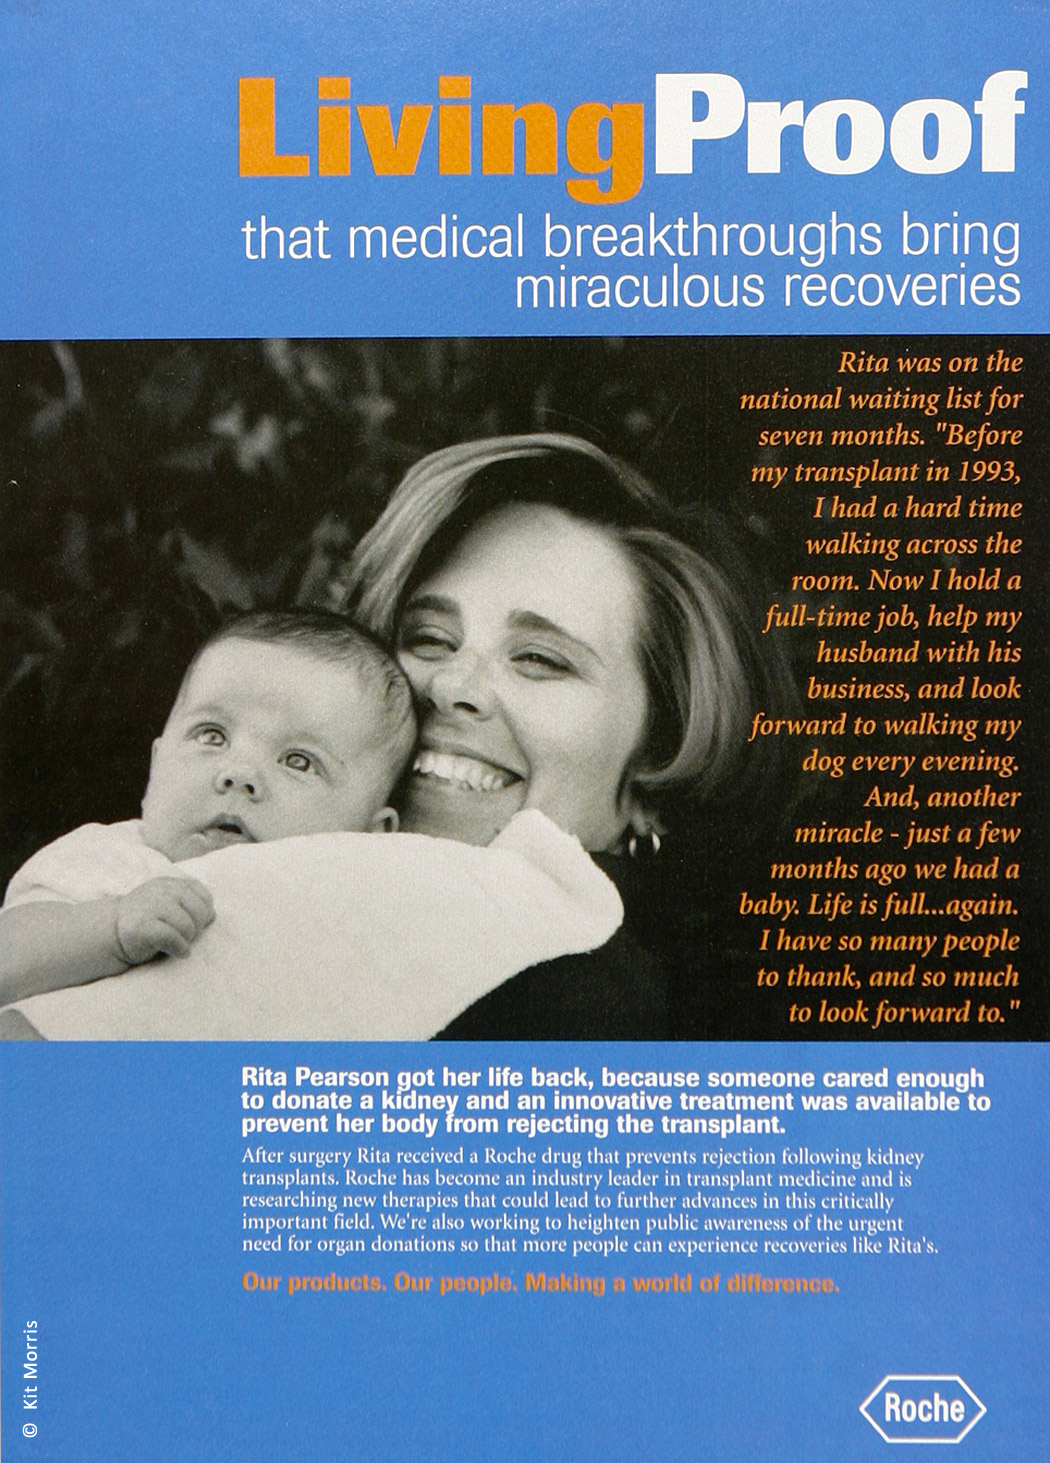 Photo of an magazine ad of smiling new mother and successful kidney transplant recipient hugging her new baby